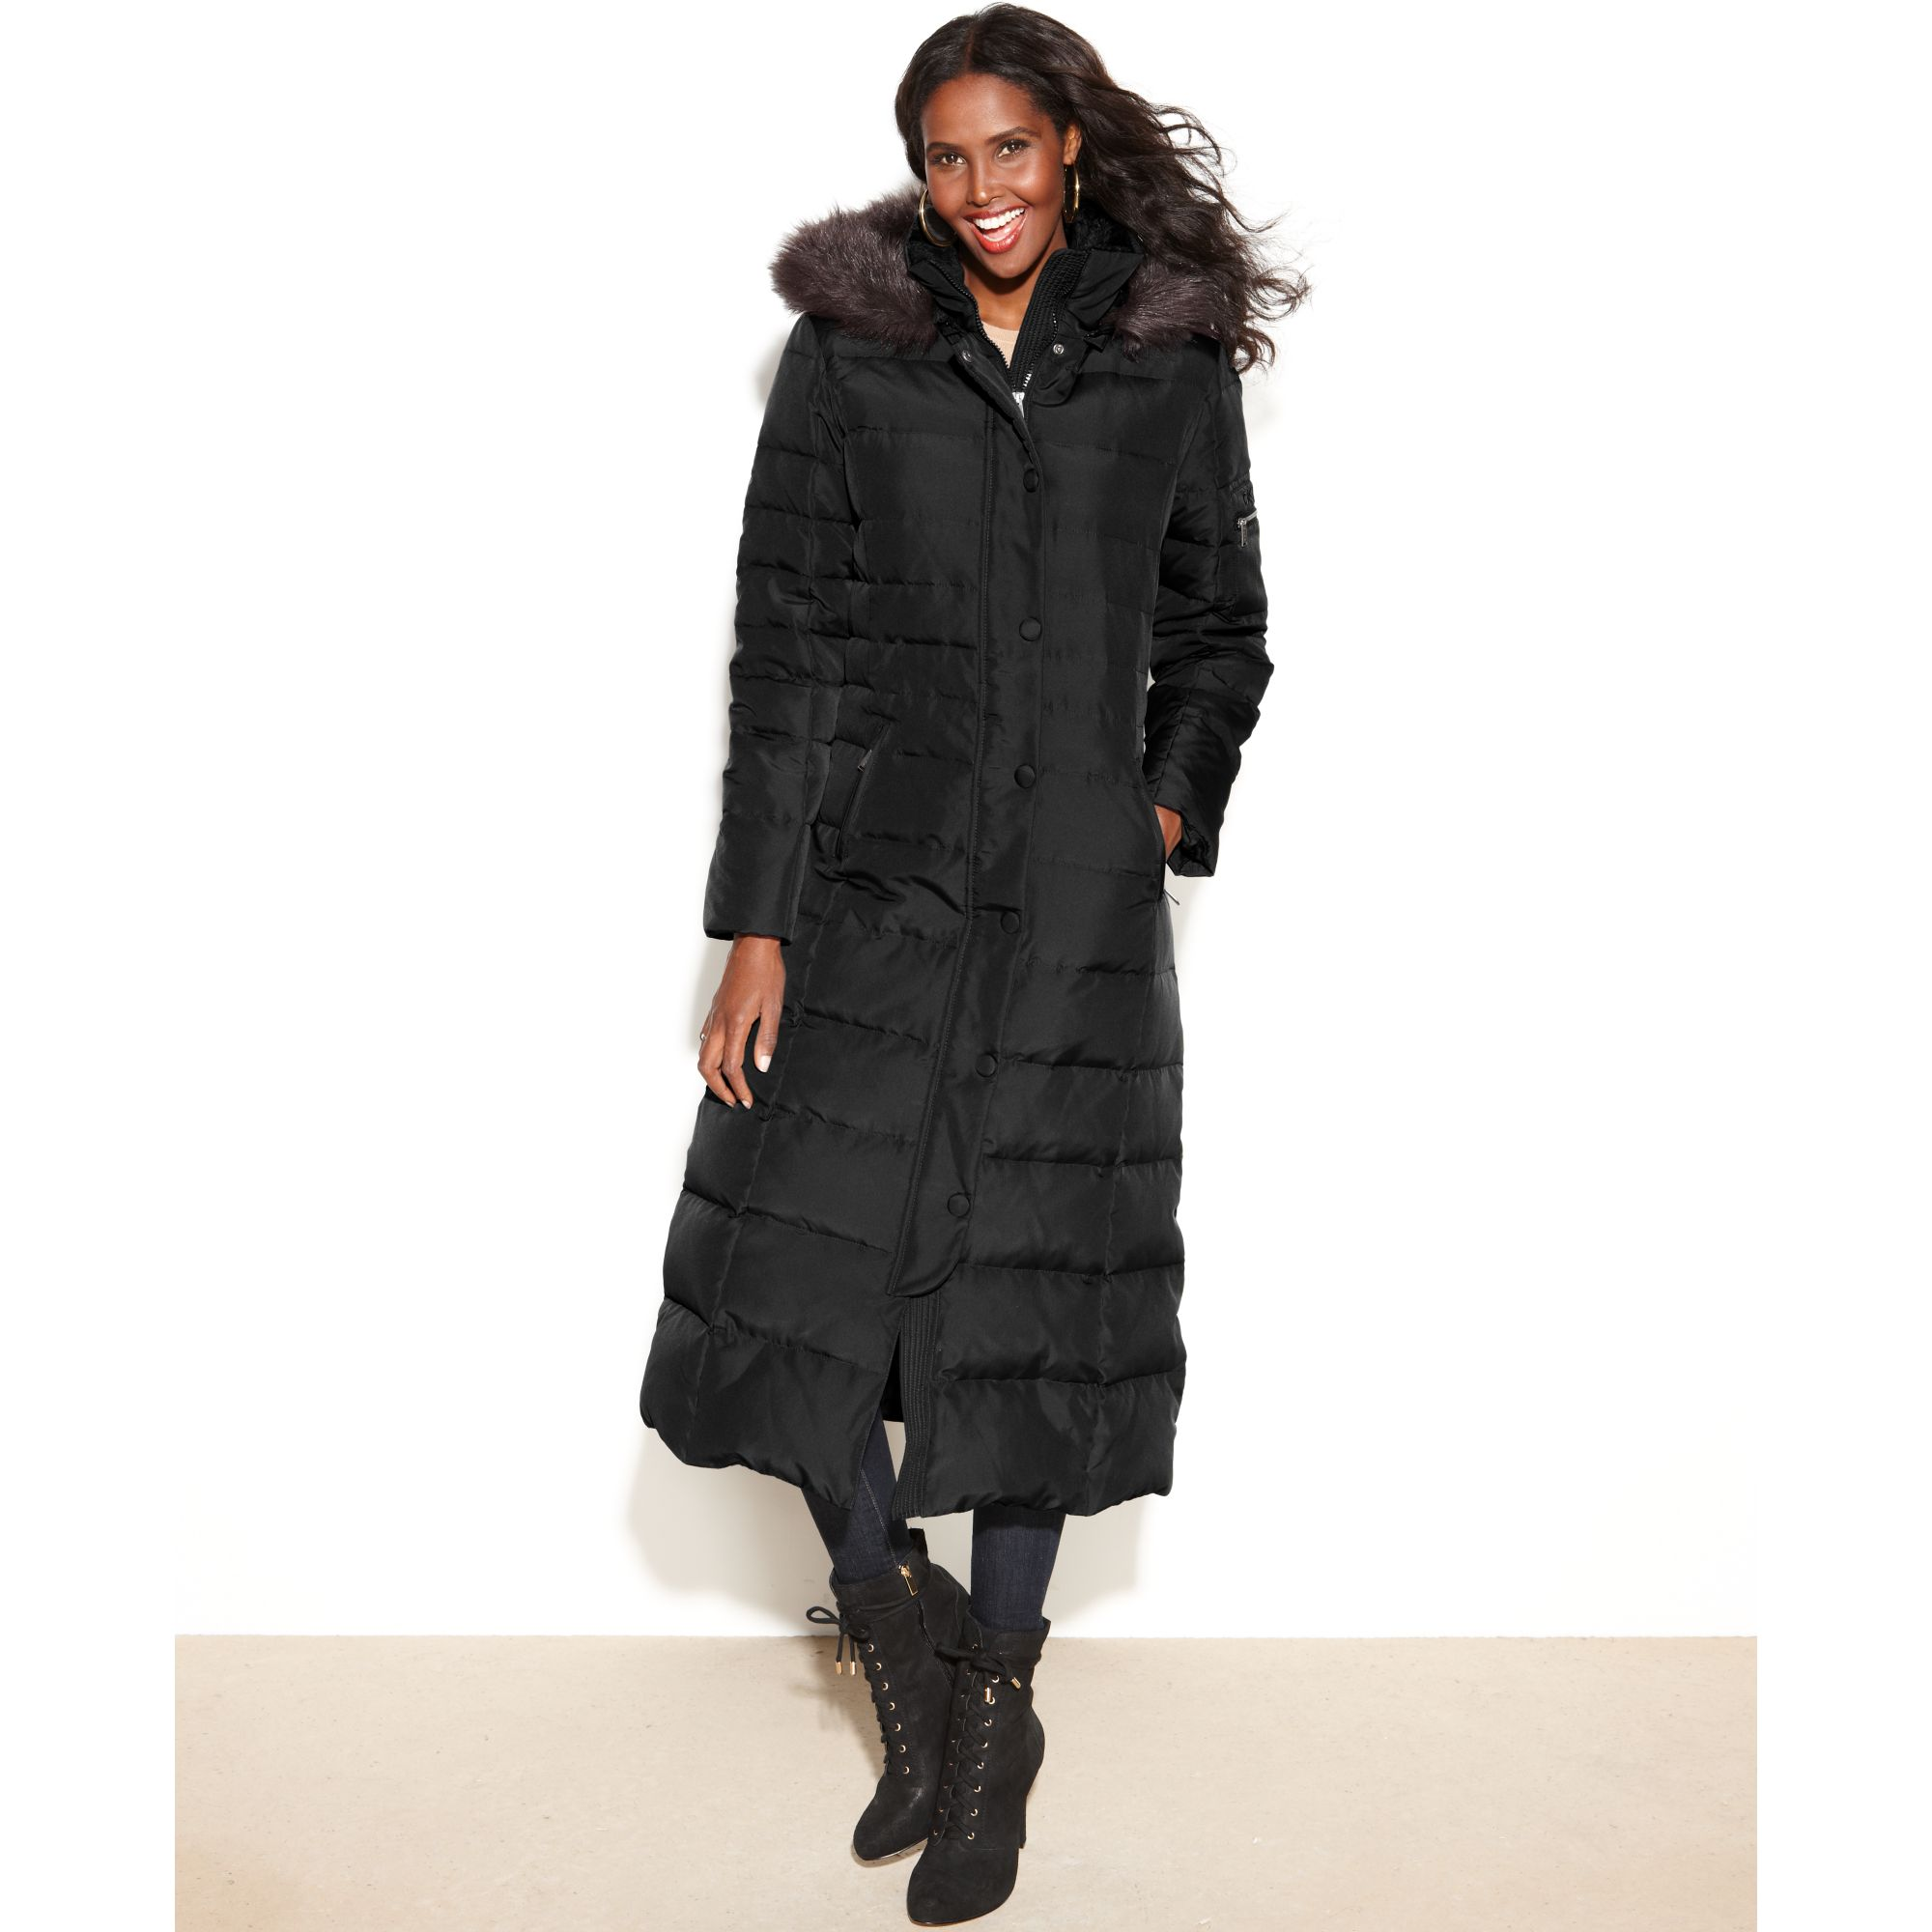 Shop petite puffer coats, trench coats, quilted coats and more at Lord & Taylor. Free shipping on any order over $